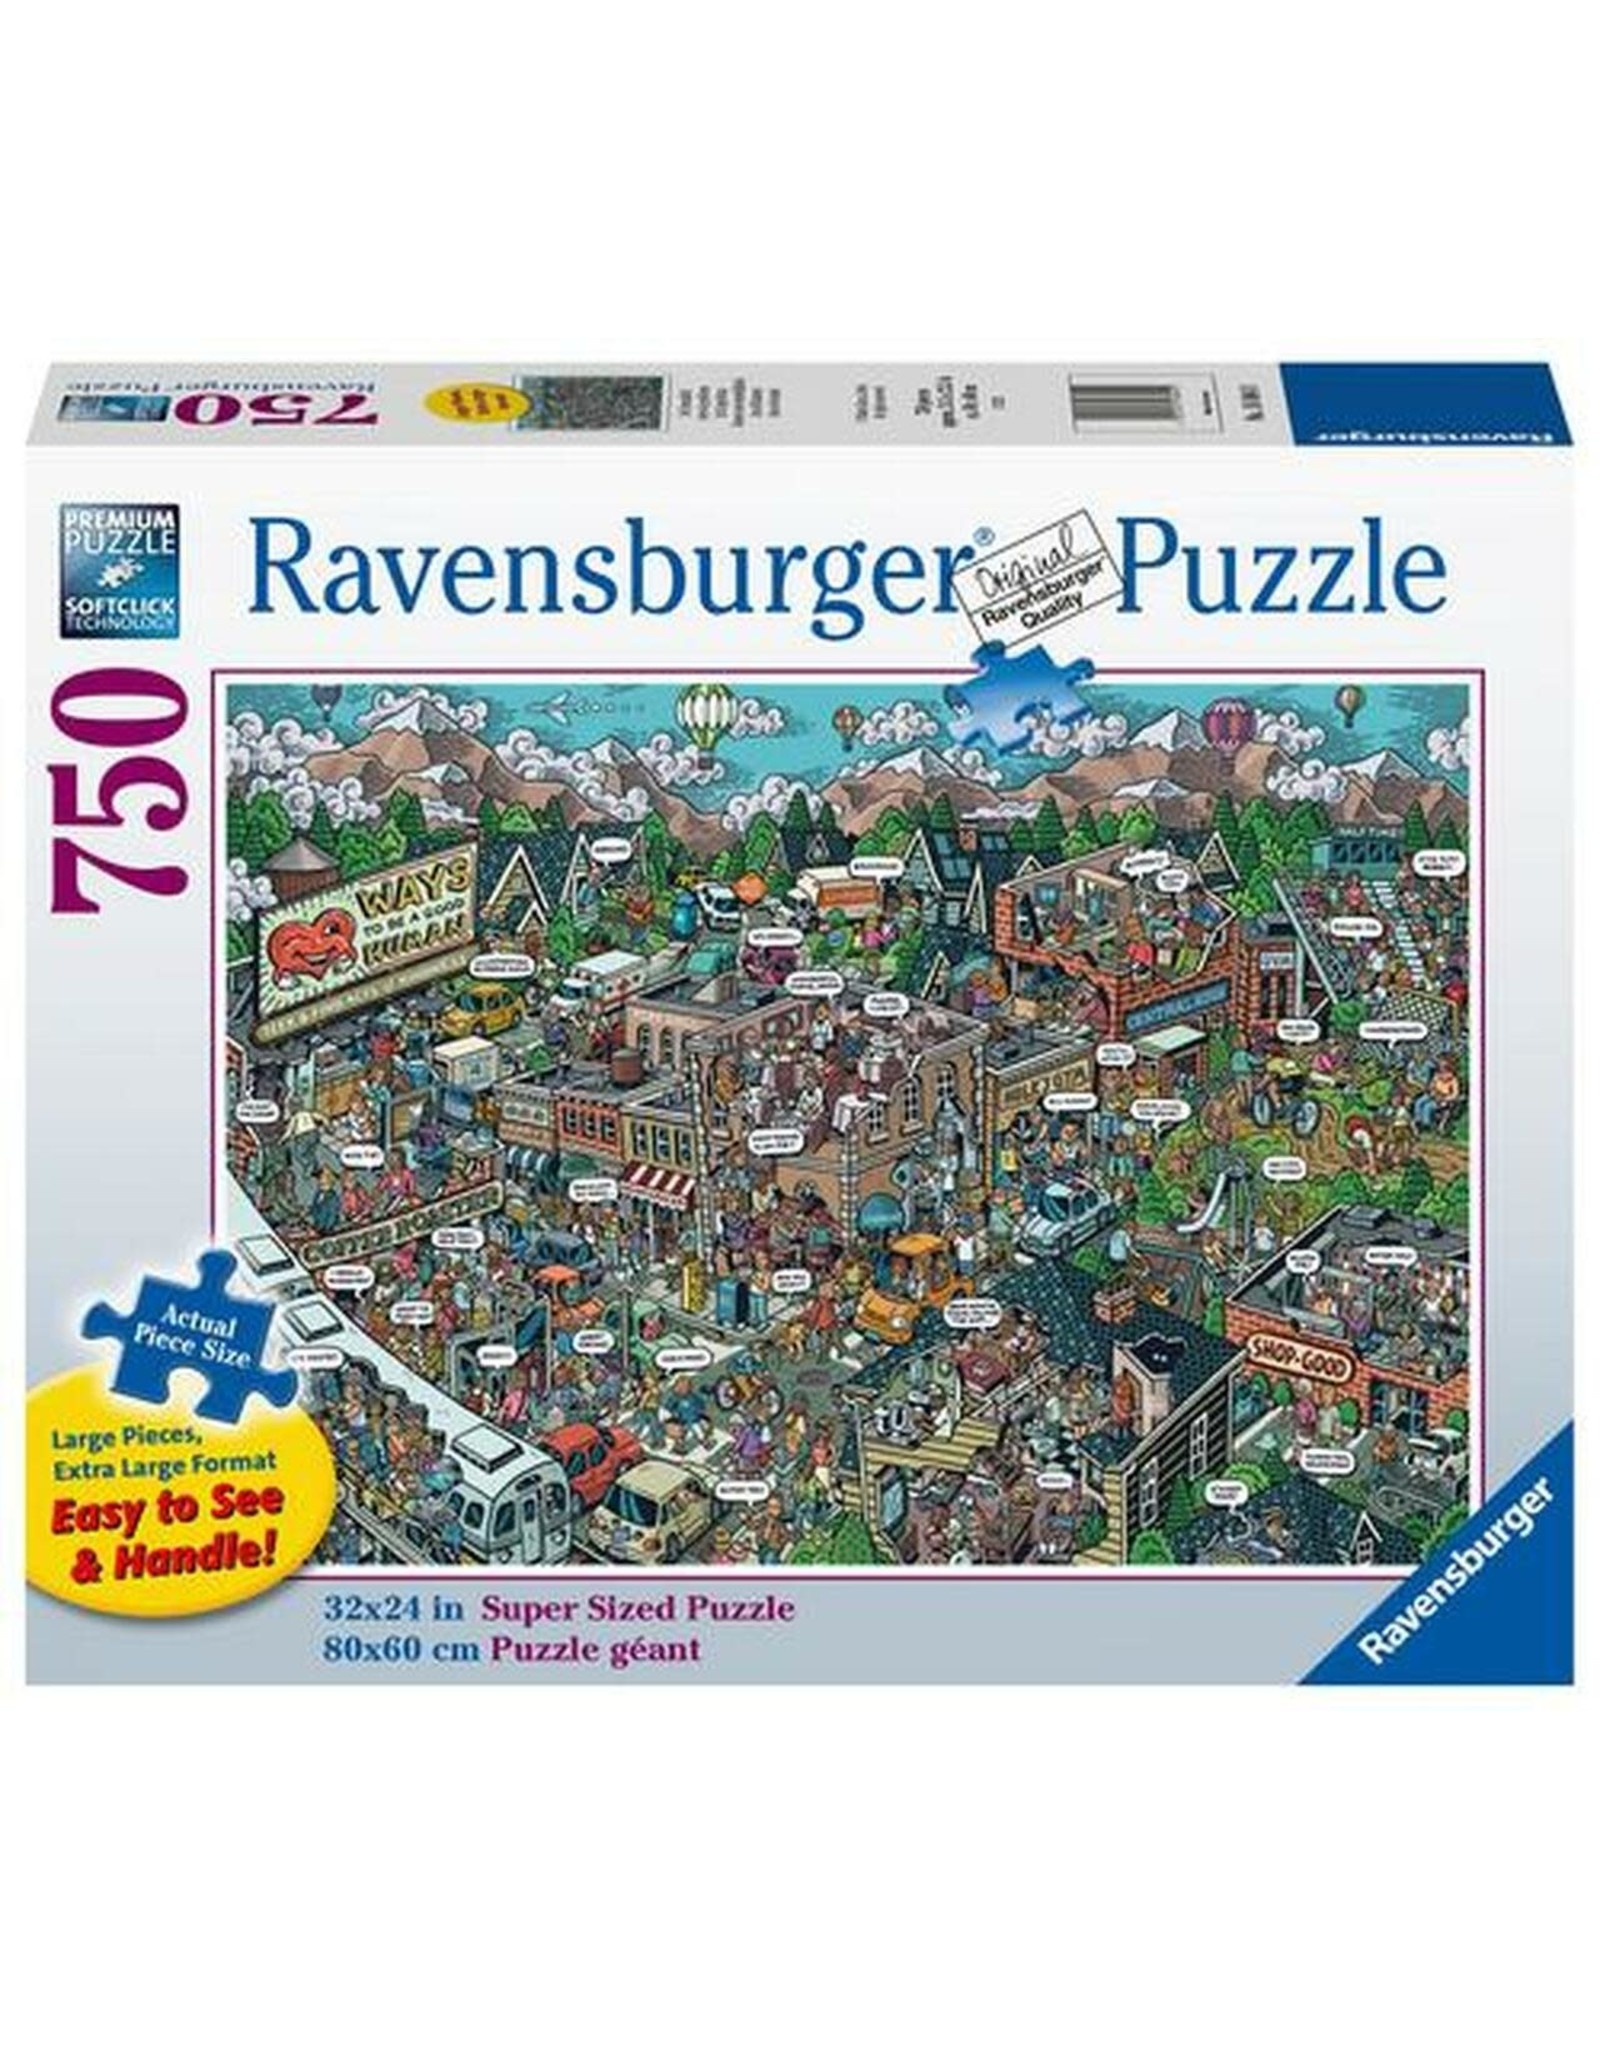 Ravensburger Acts of Kindness 750 pc